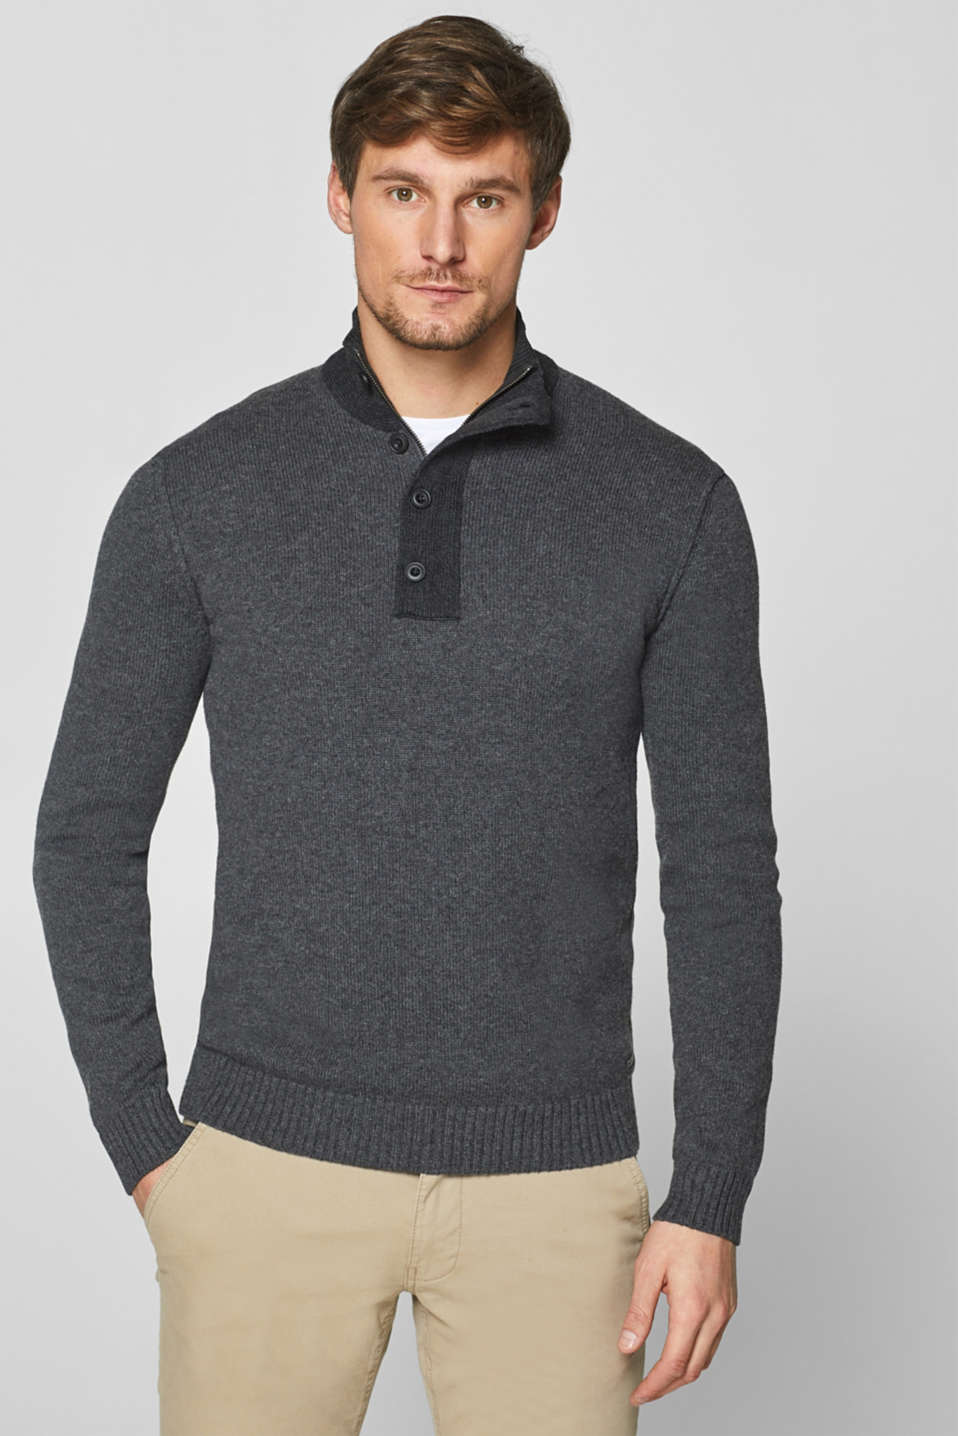 Esprit - Wool blend: Melange jumper with stand-up collar